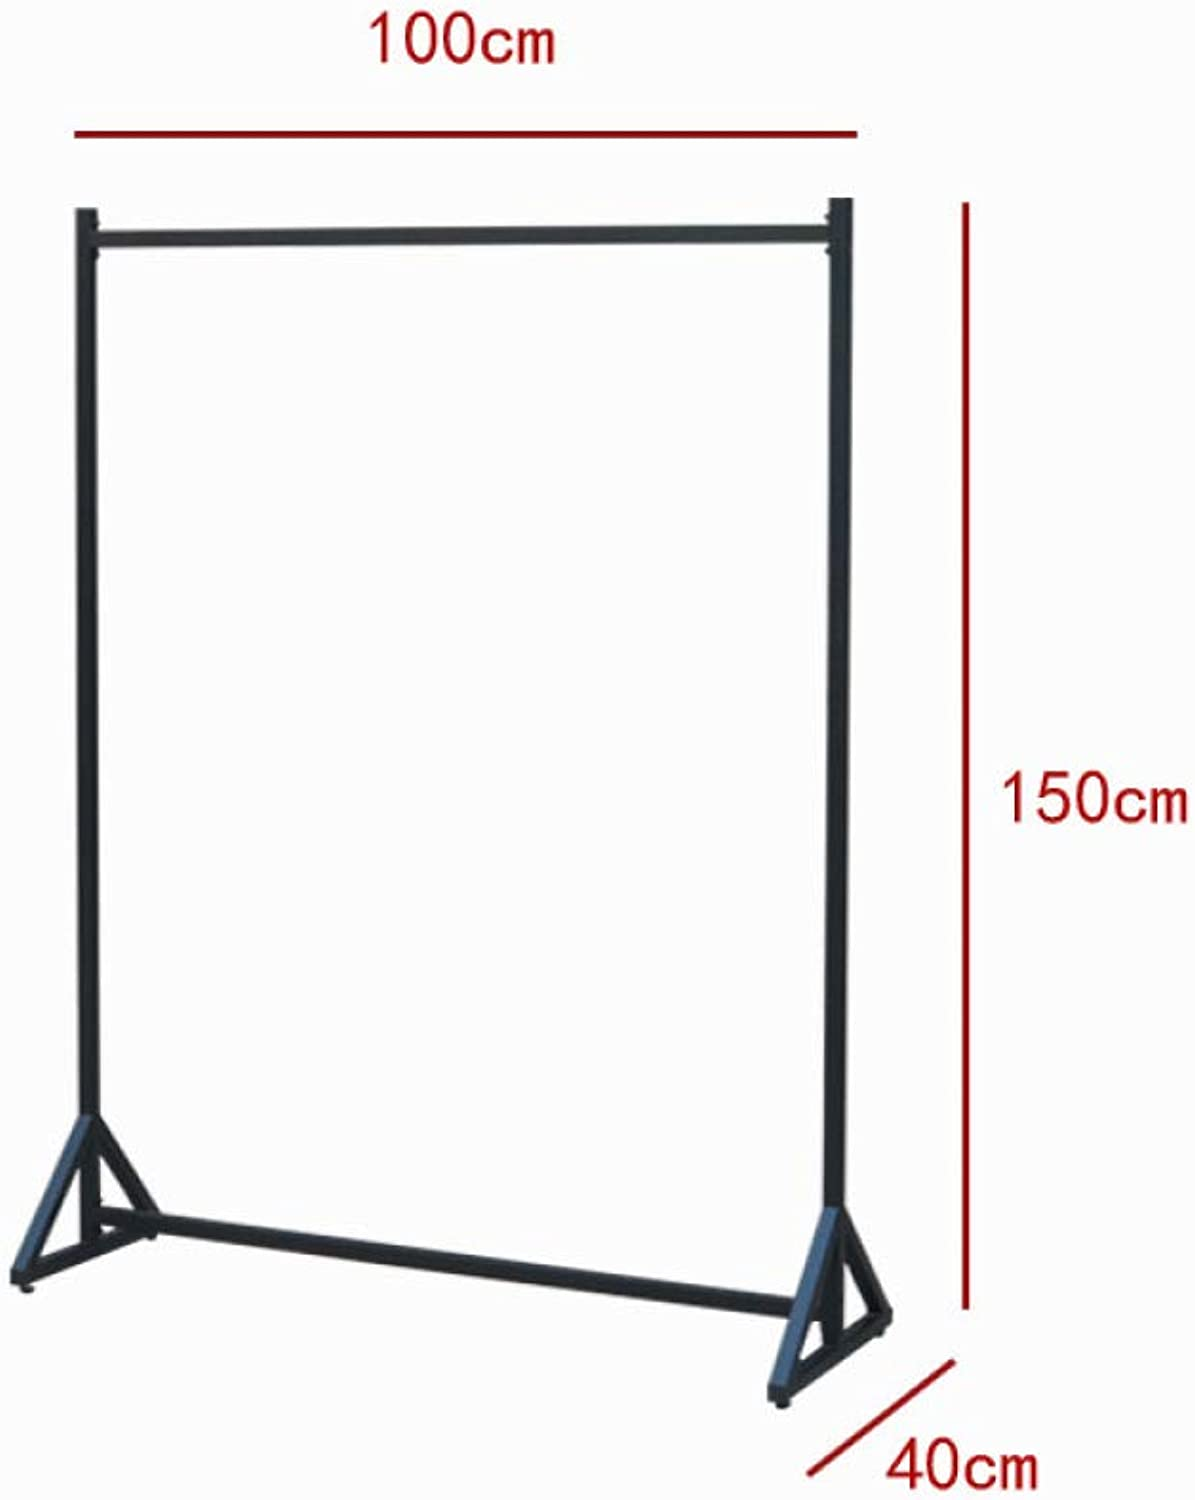 HHXD Clothing Store Creative Decoration Display Stand Floor-Standing Hanger Save Space and Strong Load Durable Black   100 x 40 x 150 cm